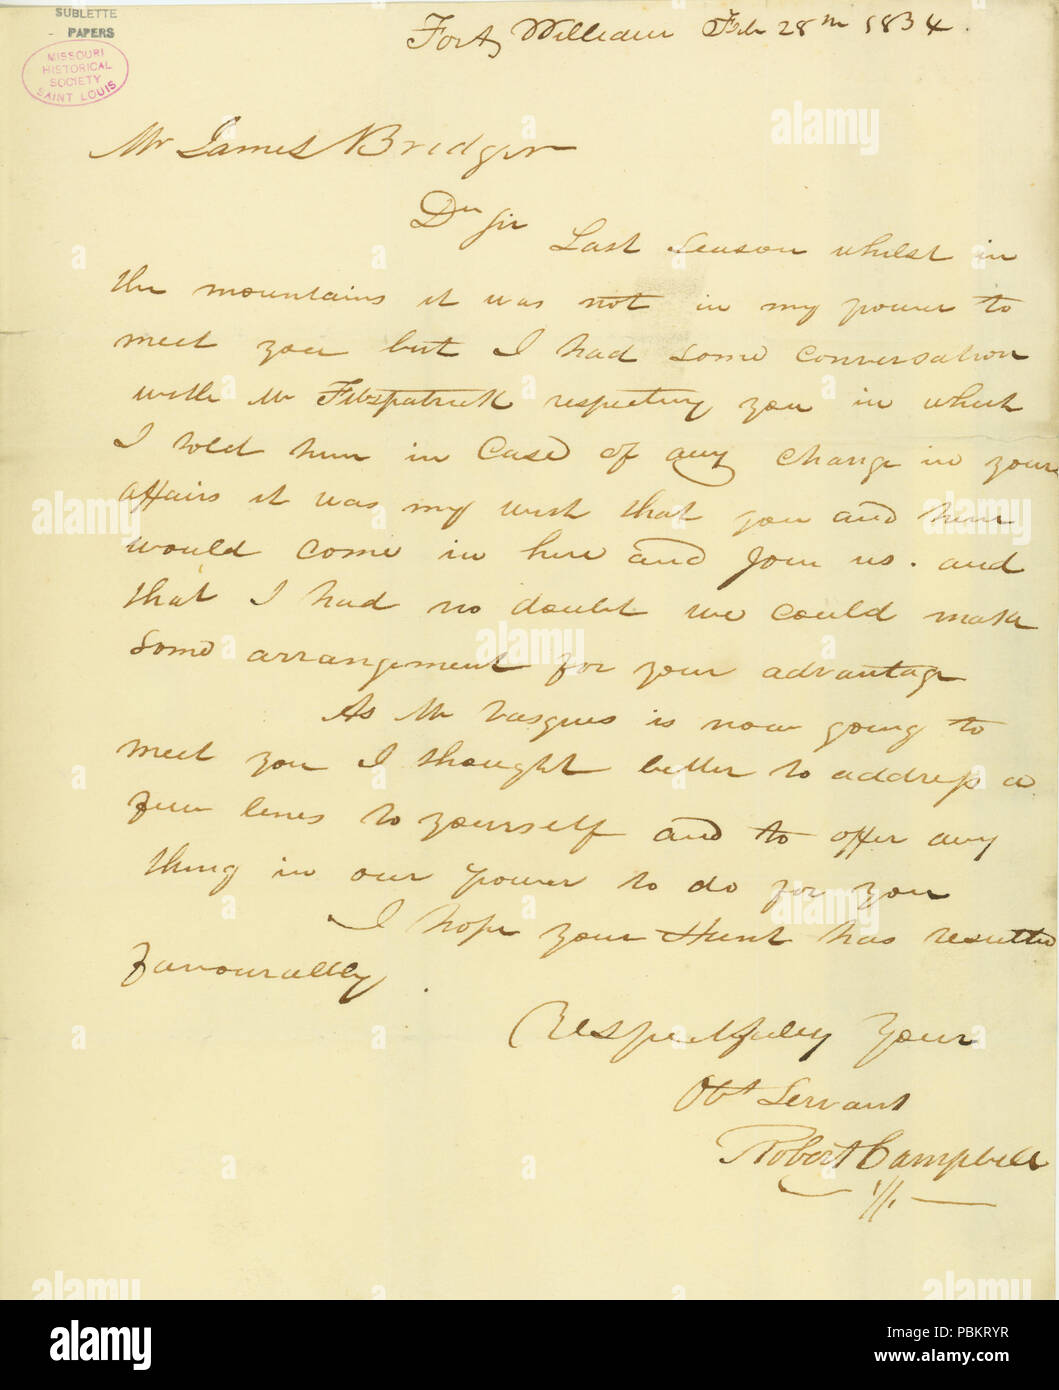 903 Letter from Robert Campbell, Fort William, to James Bridger, Rocky Mountains, February 28, 1834 - Stock Image